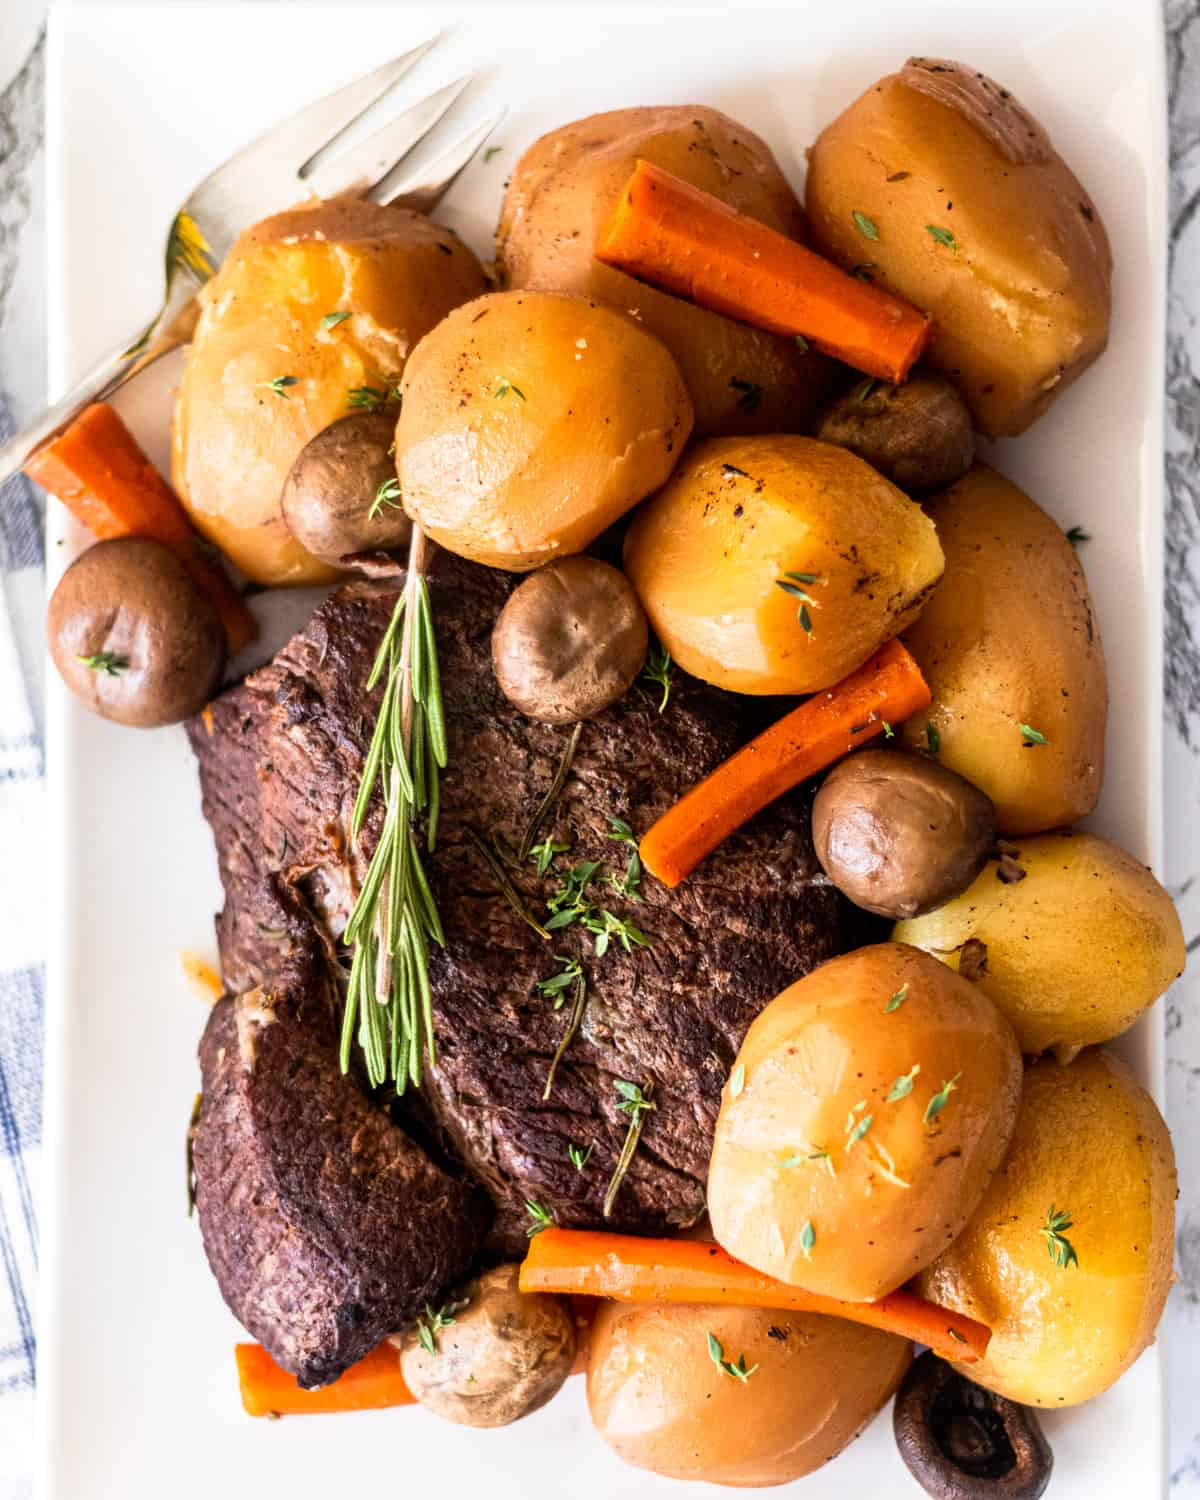 Overhead shot of a platter of pot roast, with potatoes, carrots, mushrooms and sprigs of rosemary and thyme